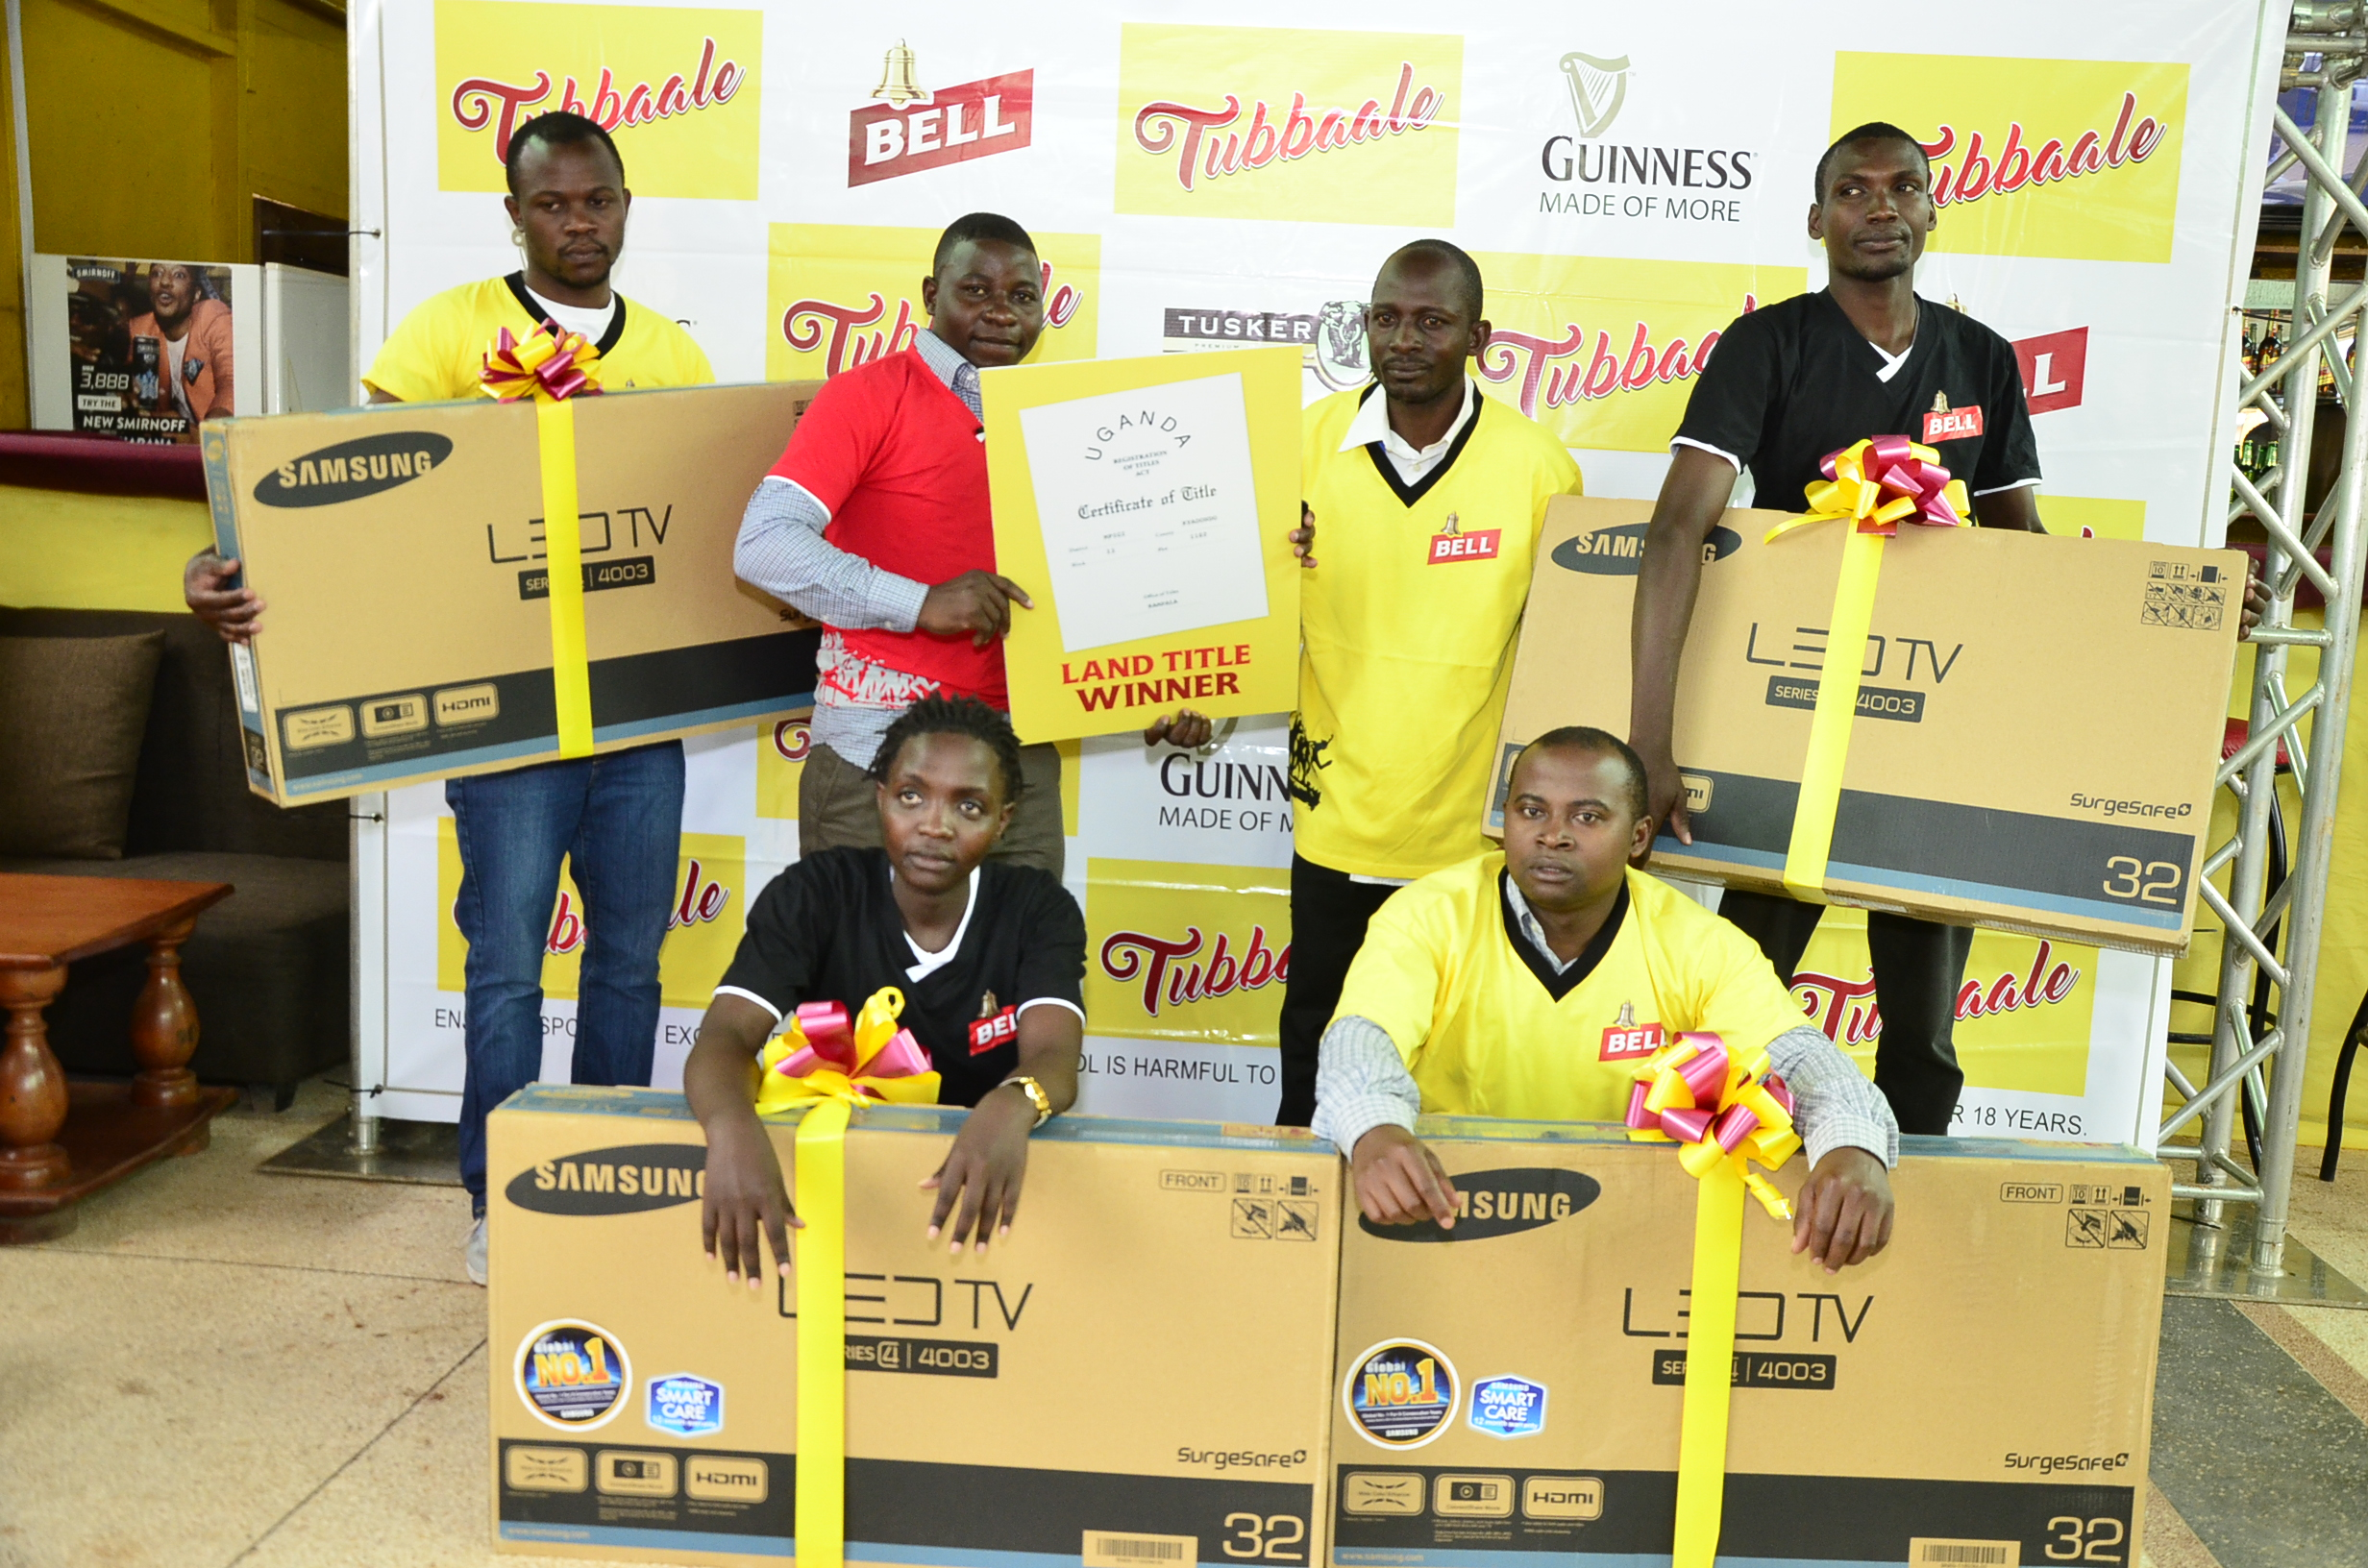 Winners of flat screen TVs and plots of land show off their prizes. A total of 38 televisions and 12 plots of land have so far been given away.